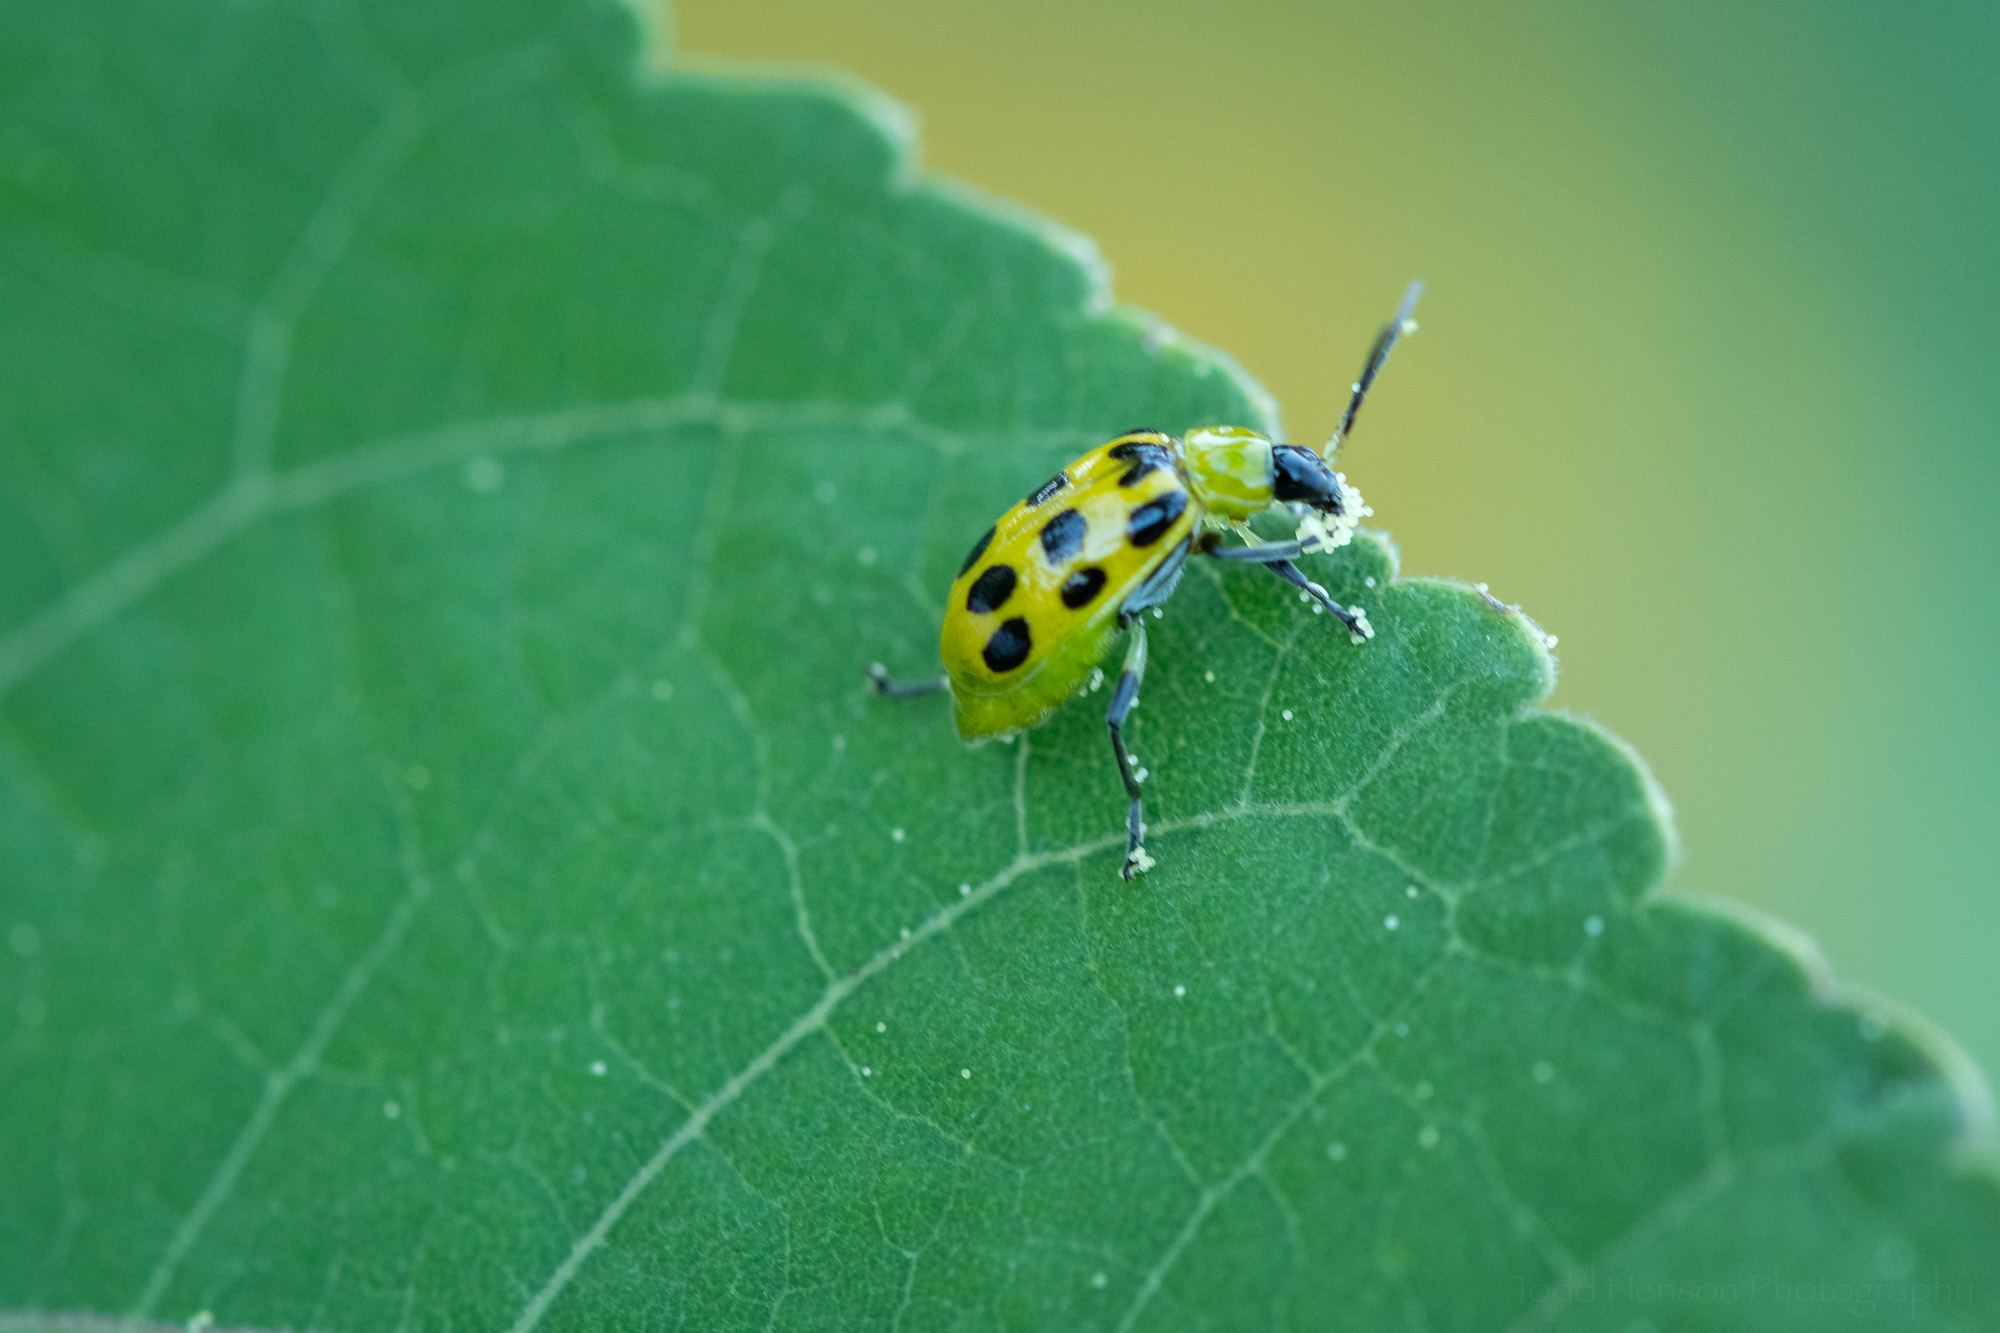 A Spotted Cucumber Beetle eating the hibiscus pollen off its front legs.